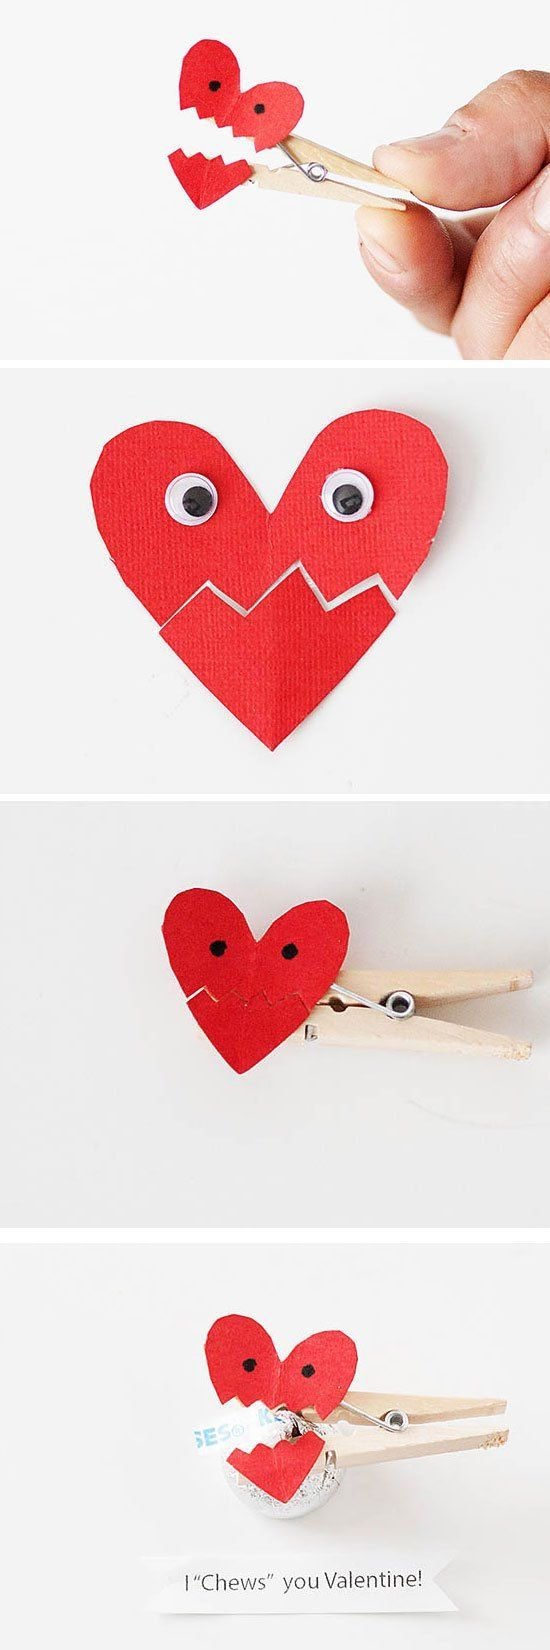 Fun Valentine's Day crafts for anyone to make! I Chews You, Valentine! So simple to do and so cute! Check out the tutorial on the blog.